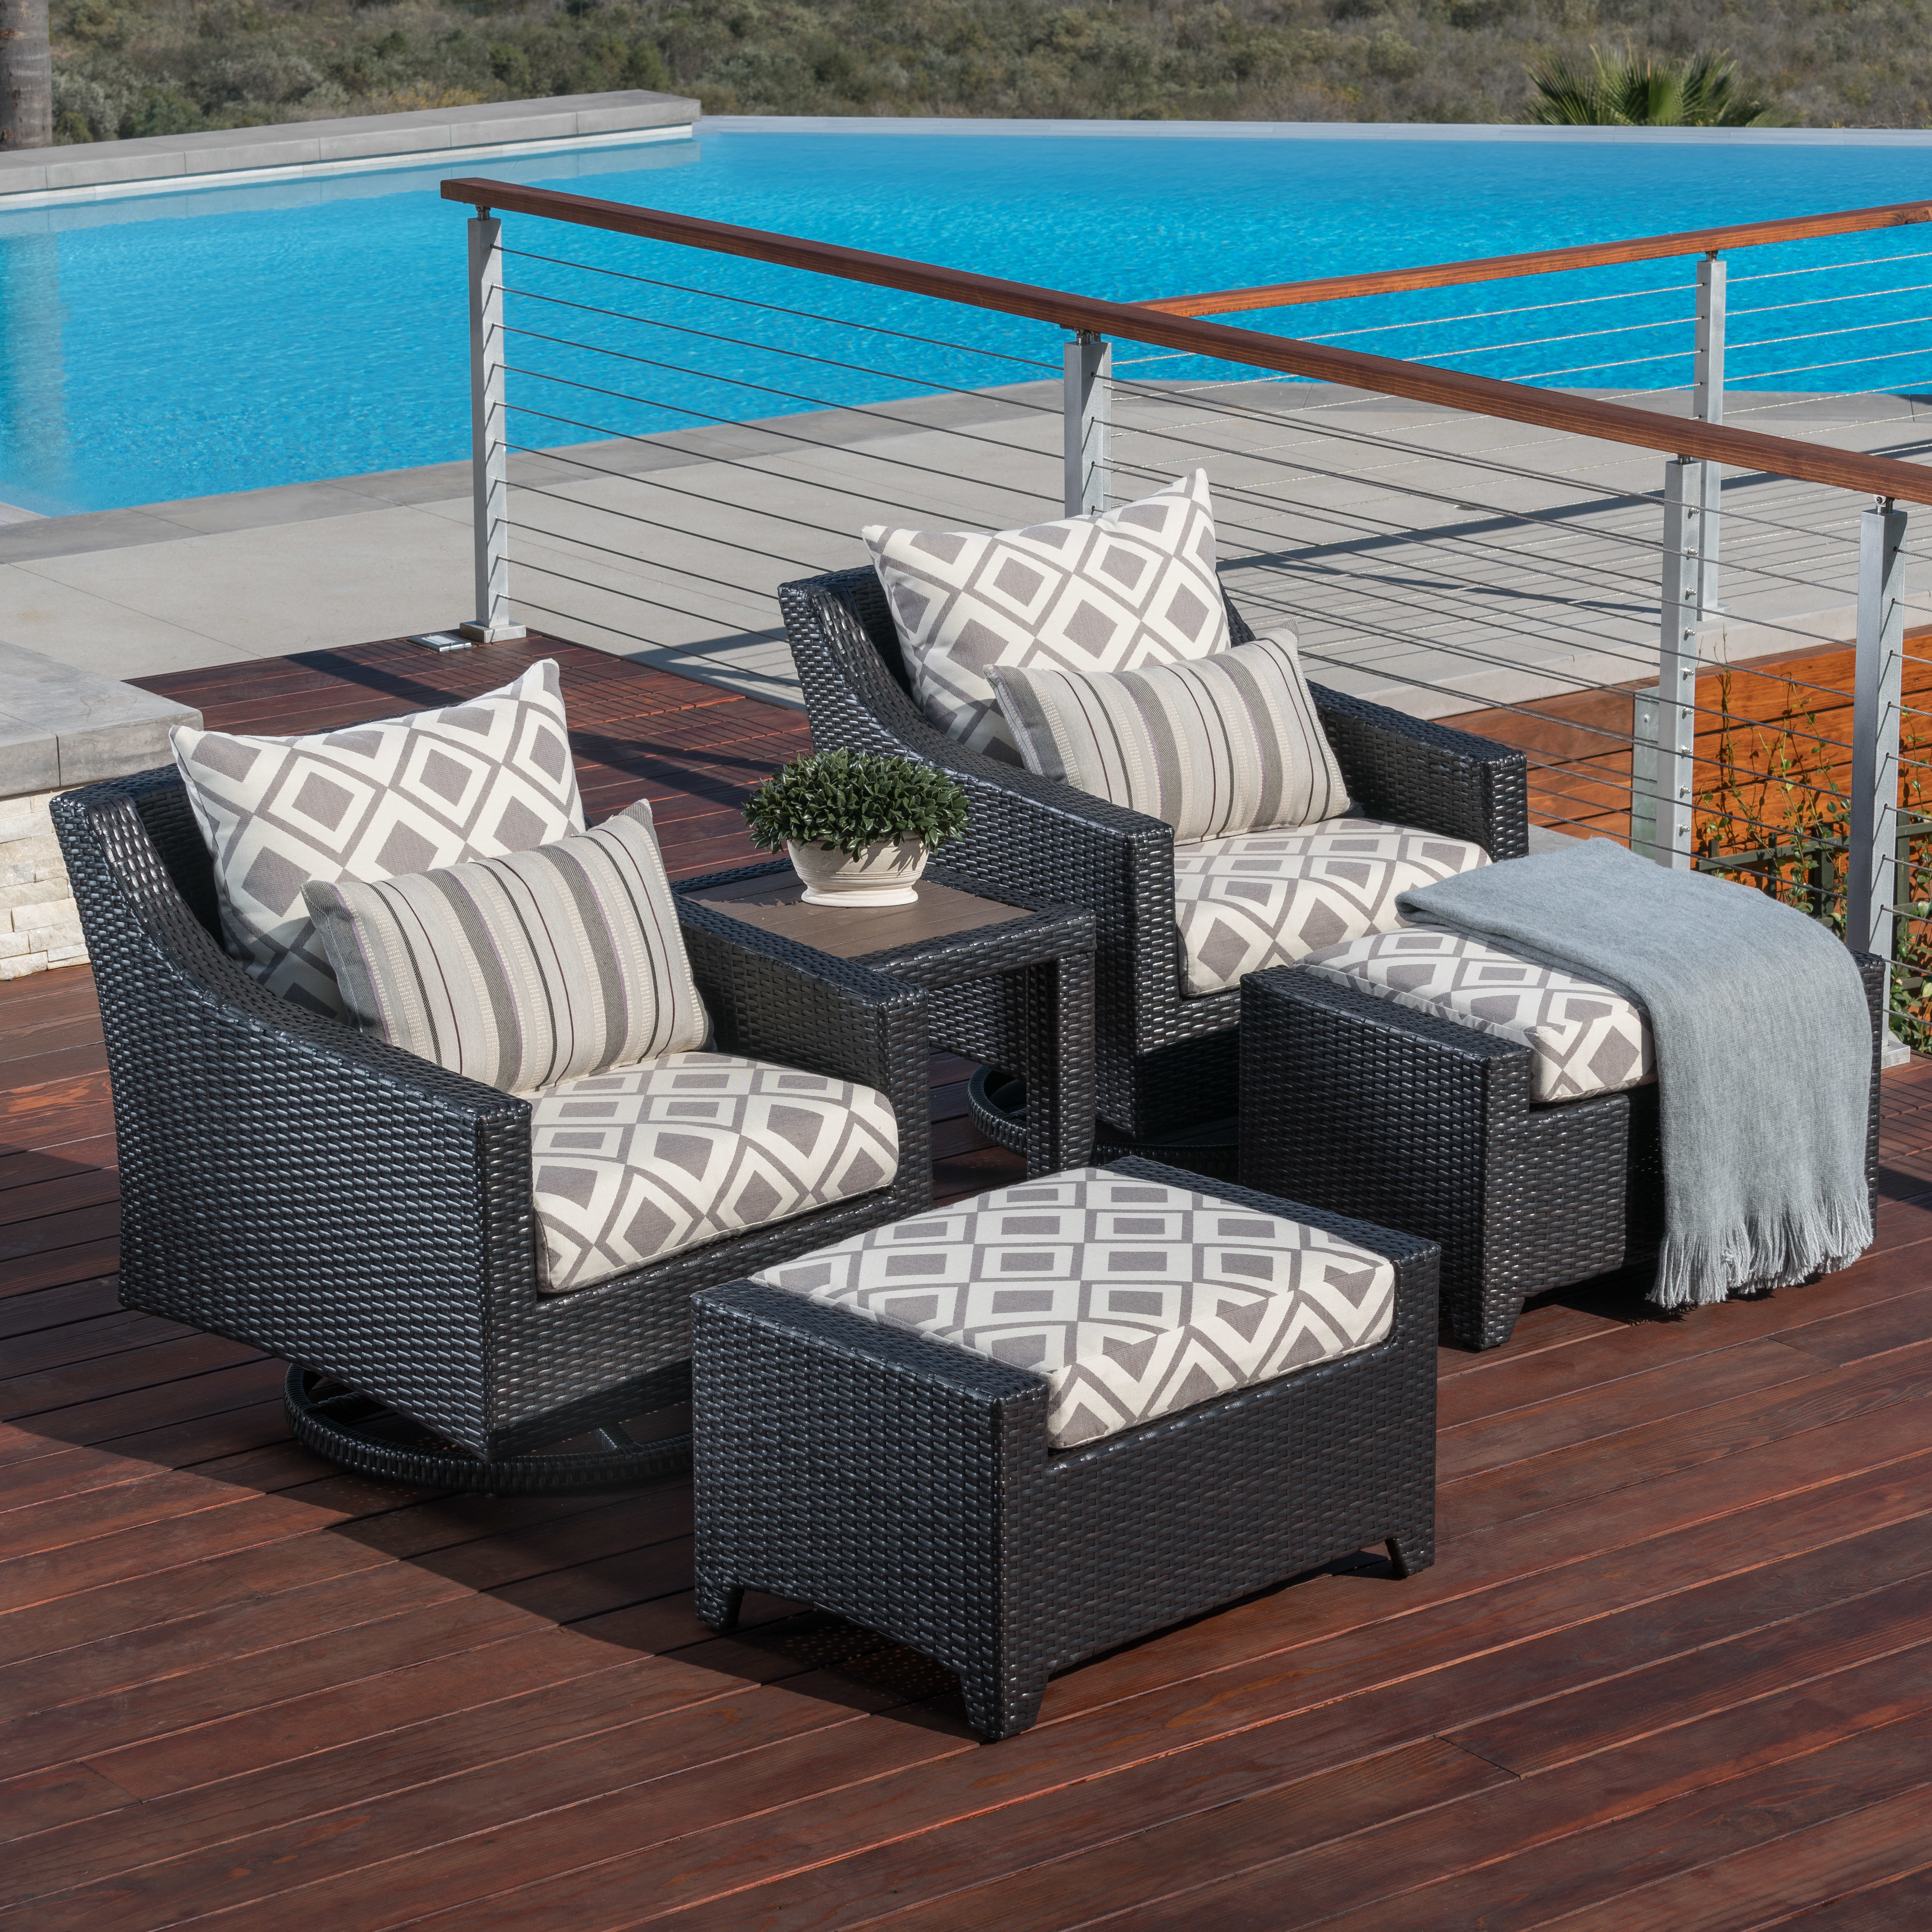 Well Liked Northridge Patio Sofas With Sunbrella Cushions For Northridge 5 Piece Rattan Sunbrella Conversation Set With Cushions (View 20 of 20)